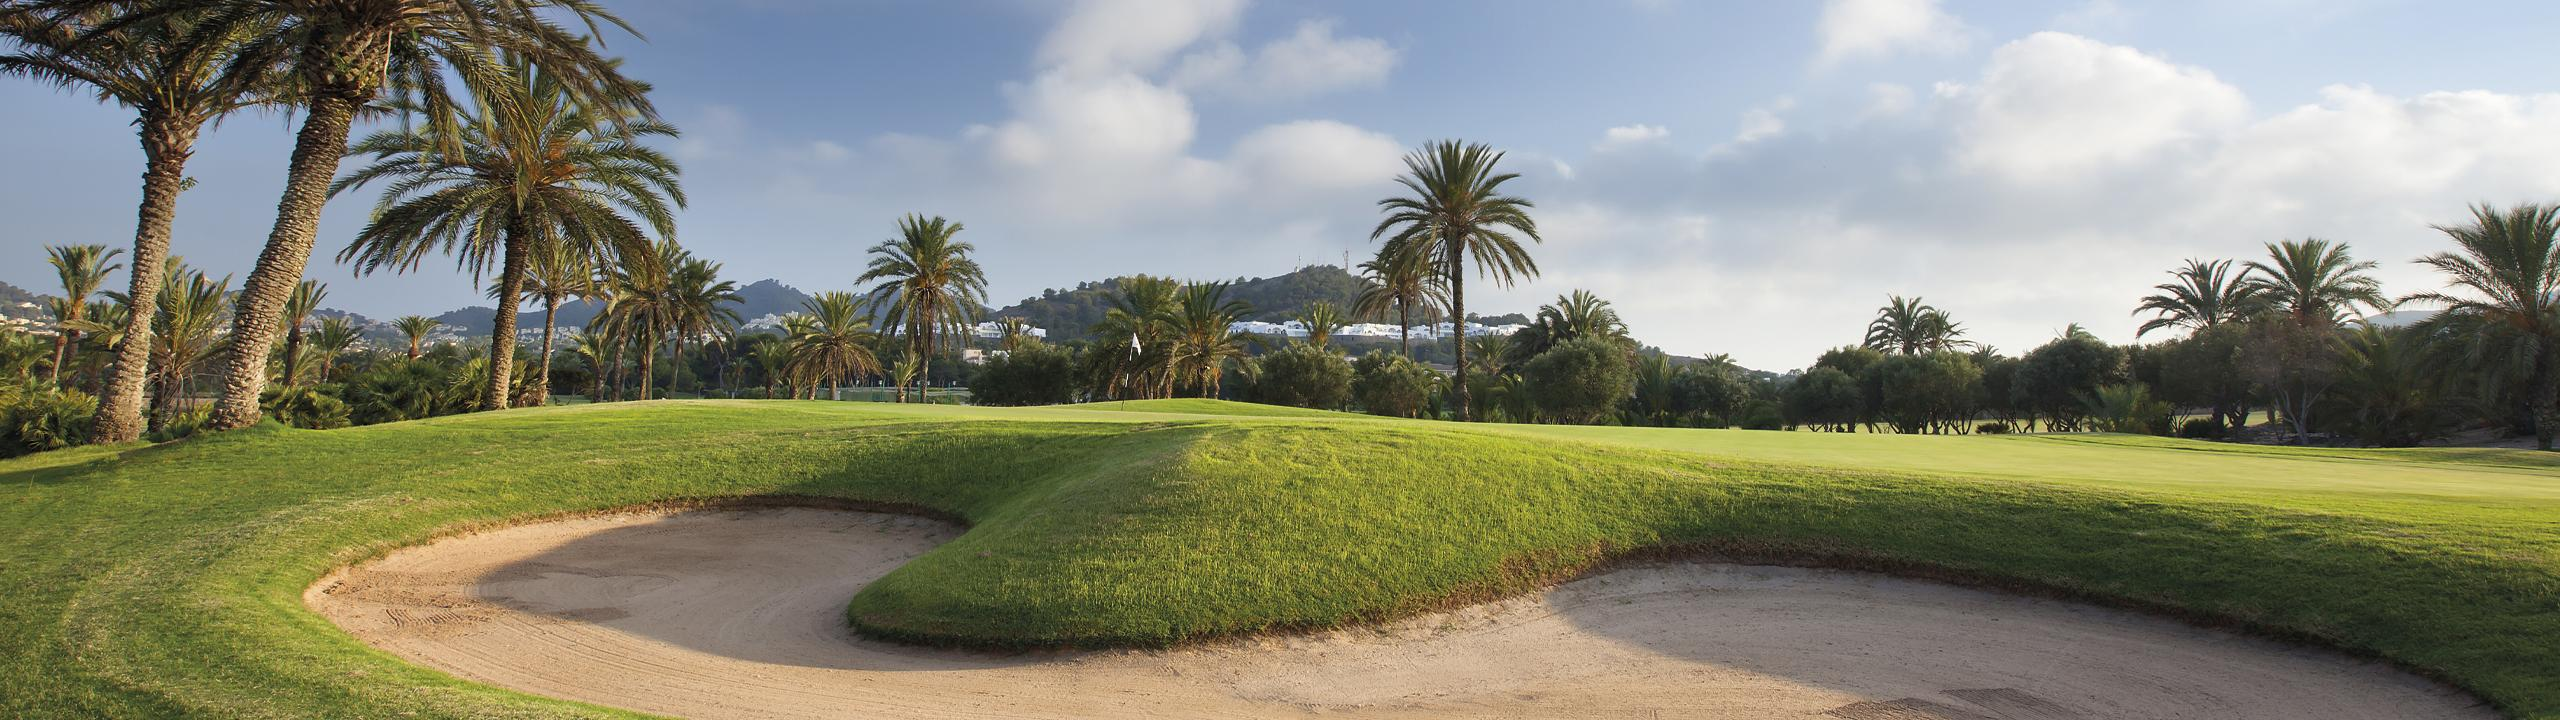 Oferta Escapada de golf La Manga Club